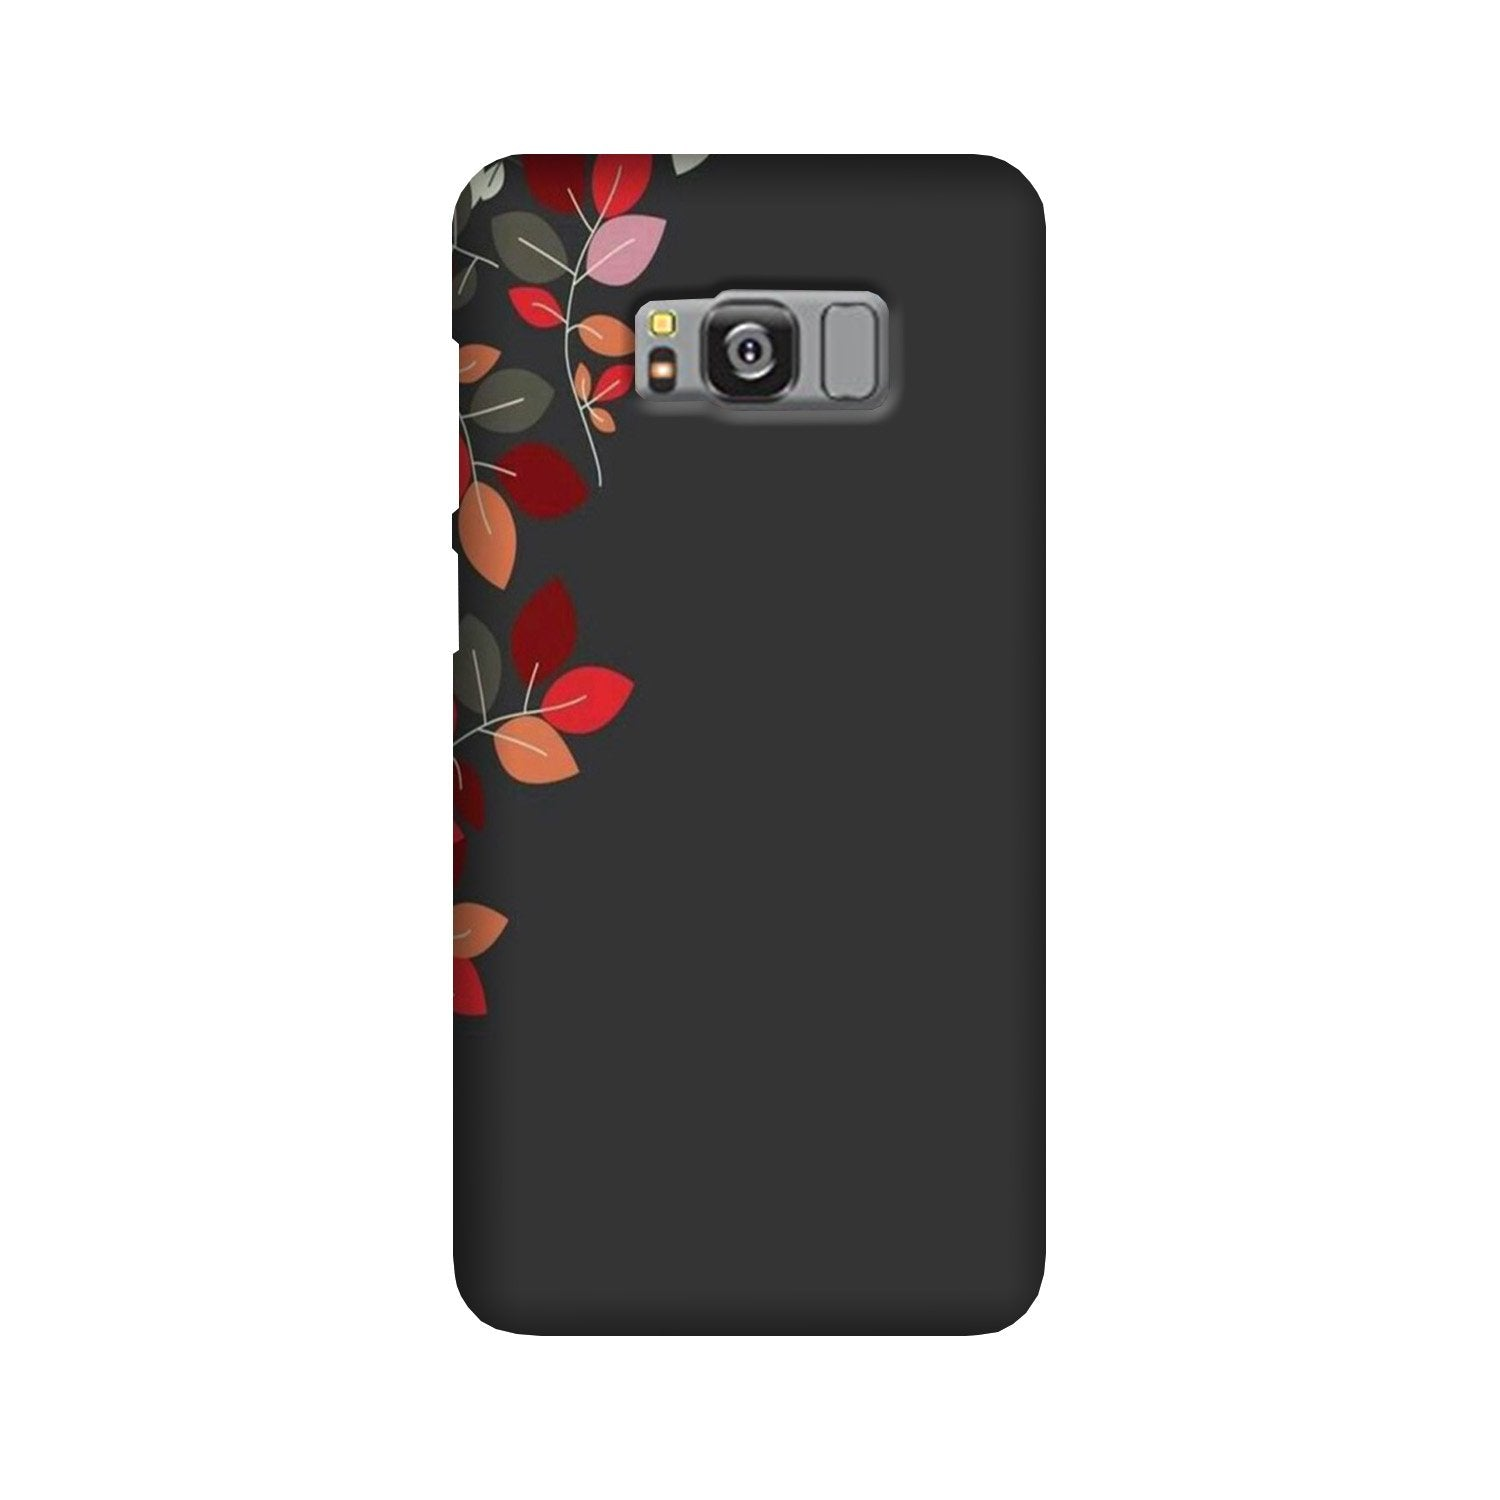 Grey Background Case for Galaxy S8